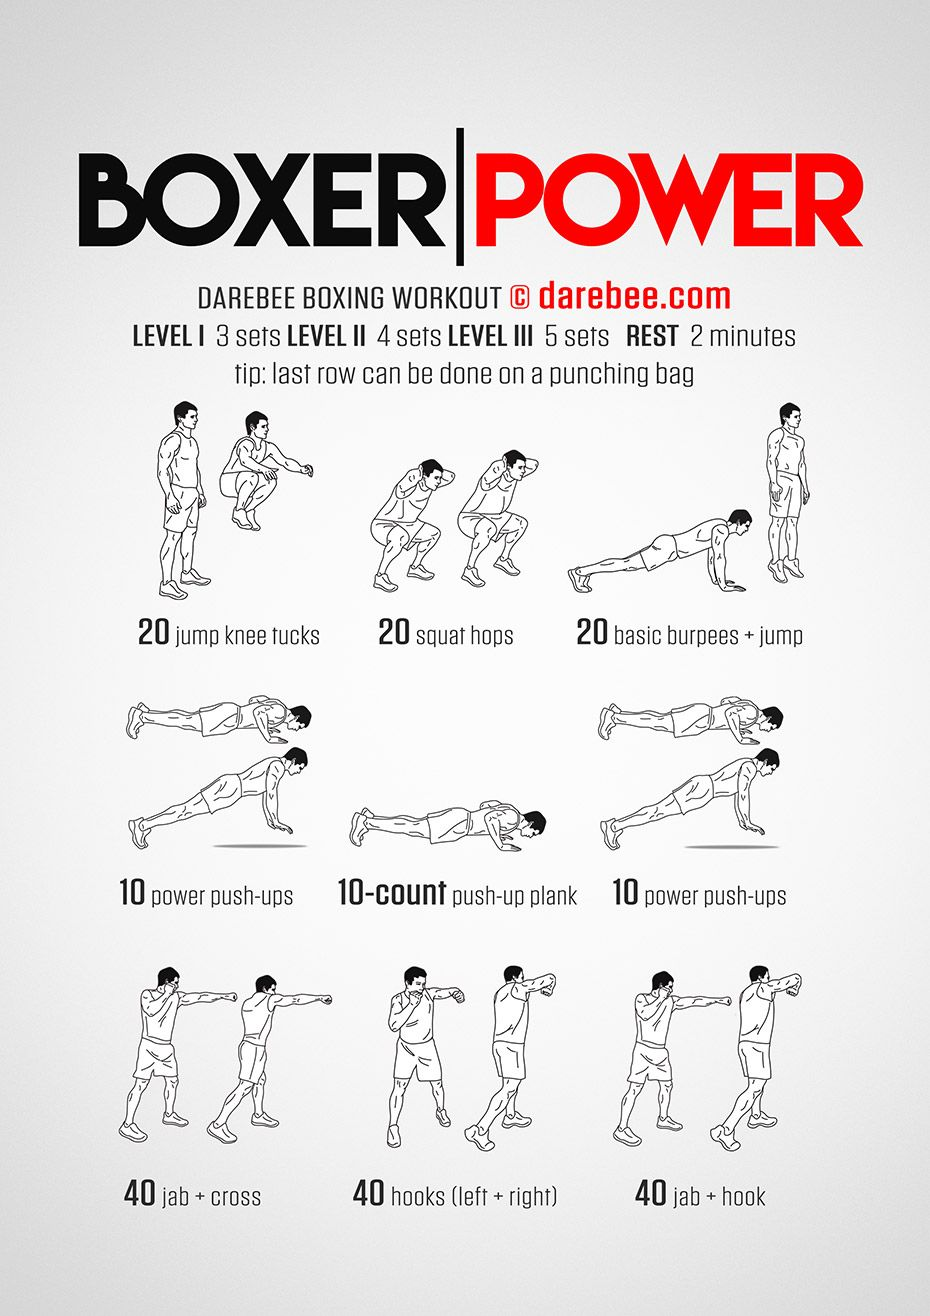 boxer power workout neilarey darebee pinterest boxen bungen und kickboxen. Black Bedroom Furniture Sets. Home Design Ideas